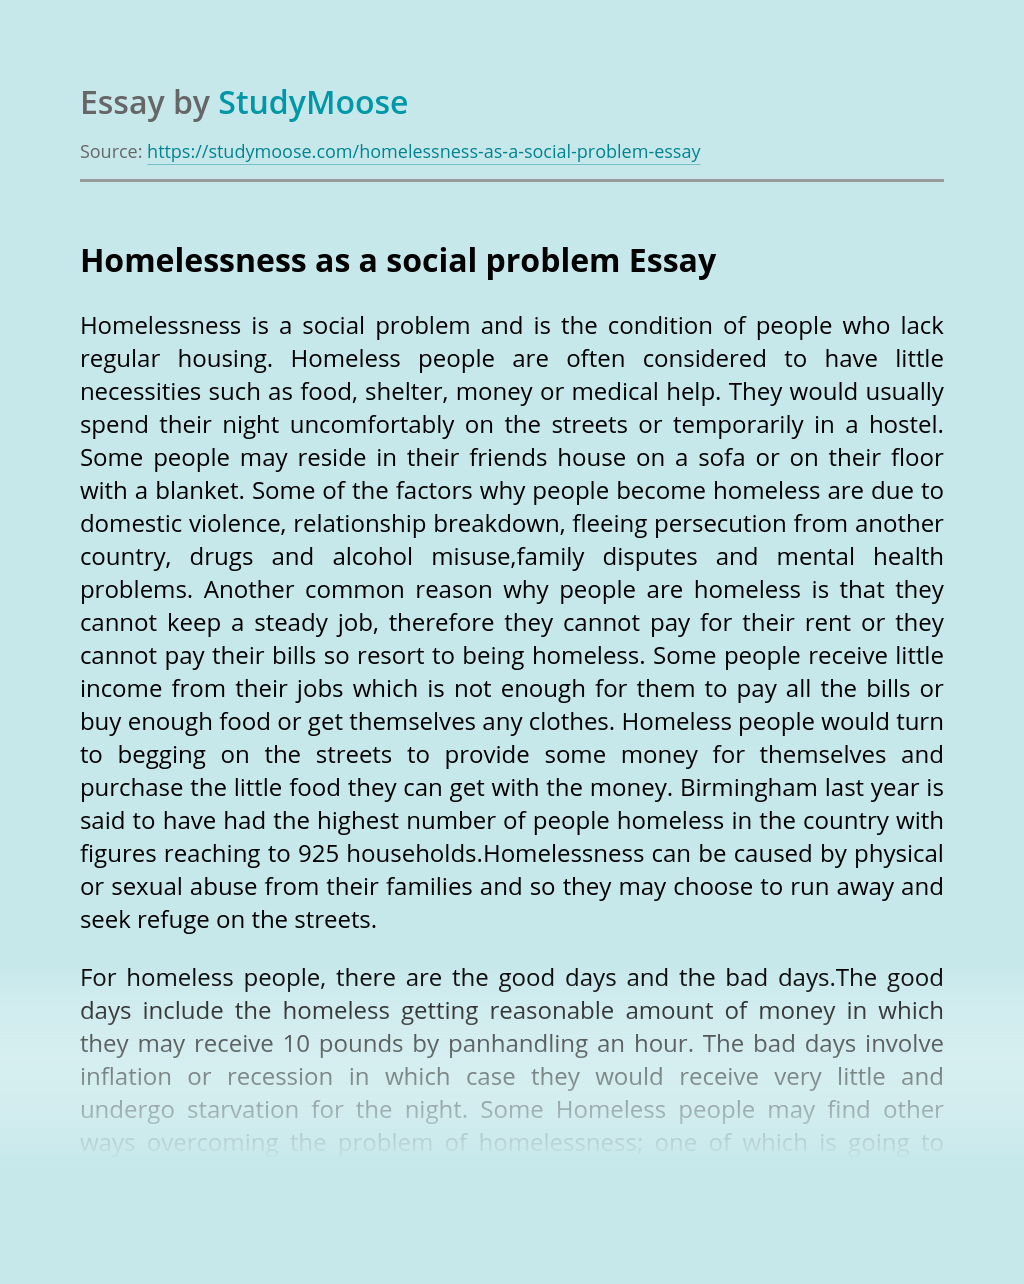 Homelessness as a social problem